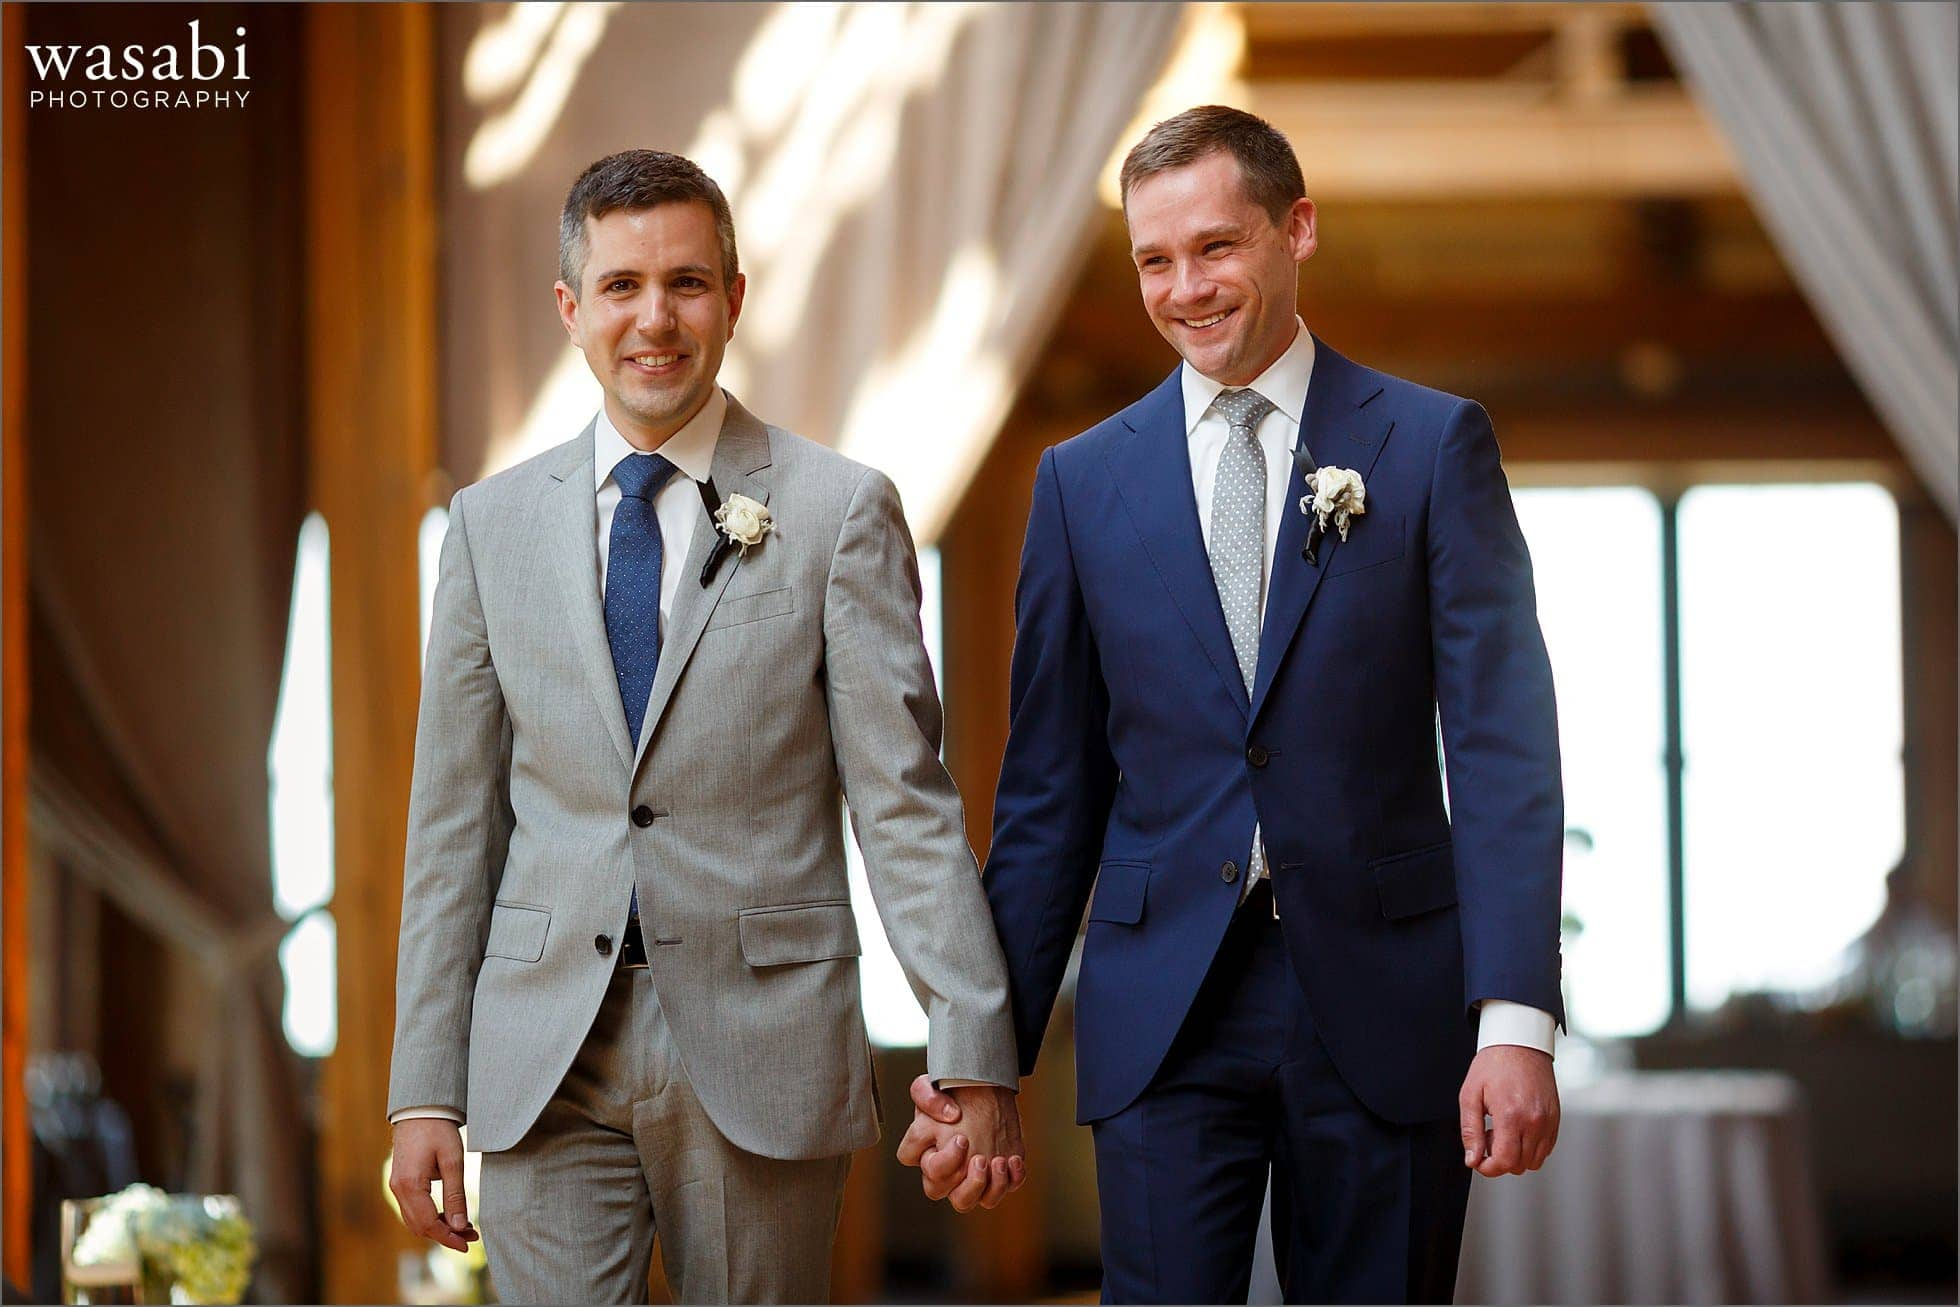 two grooms walk down the aisle during their wedding ceremony at Skyline Loft at Bridgeport Art Center in Chicago